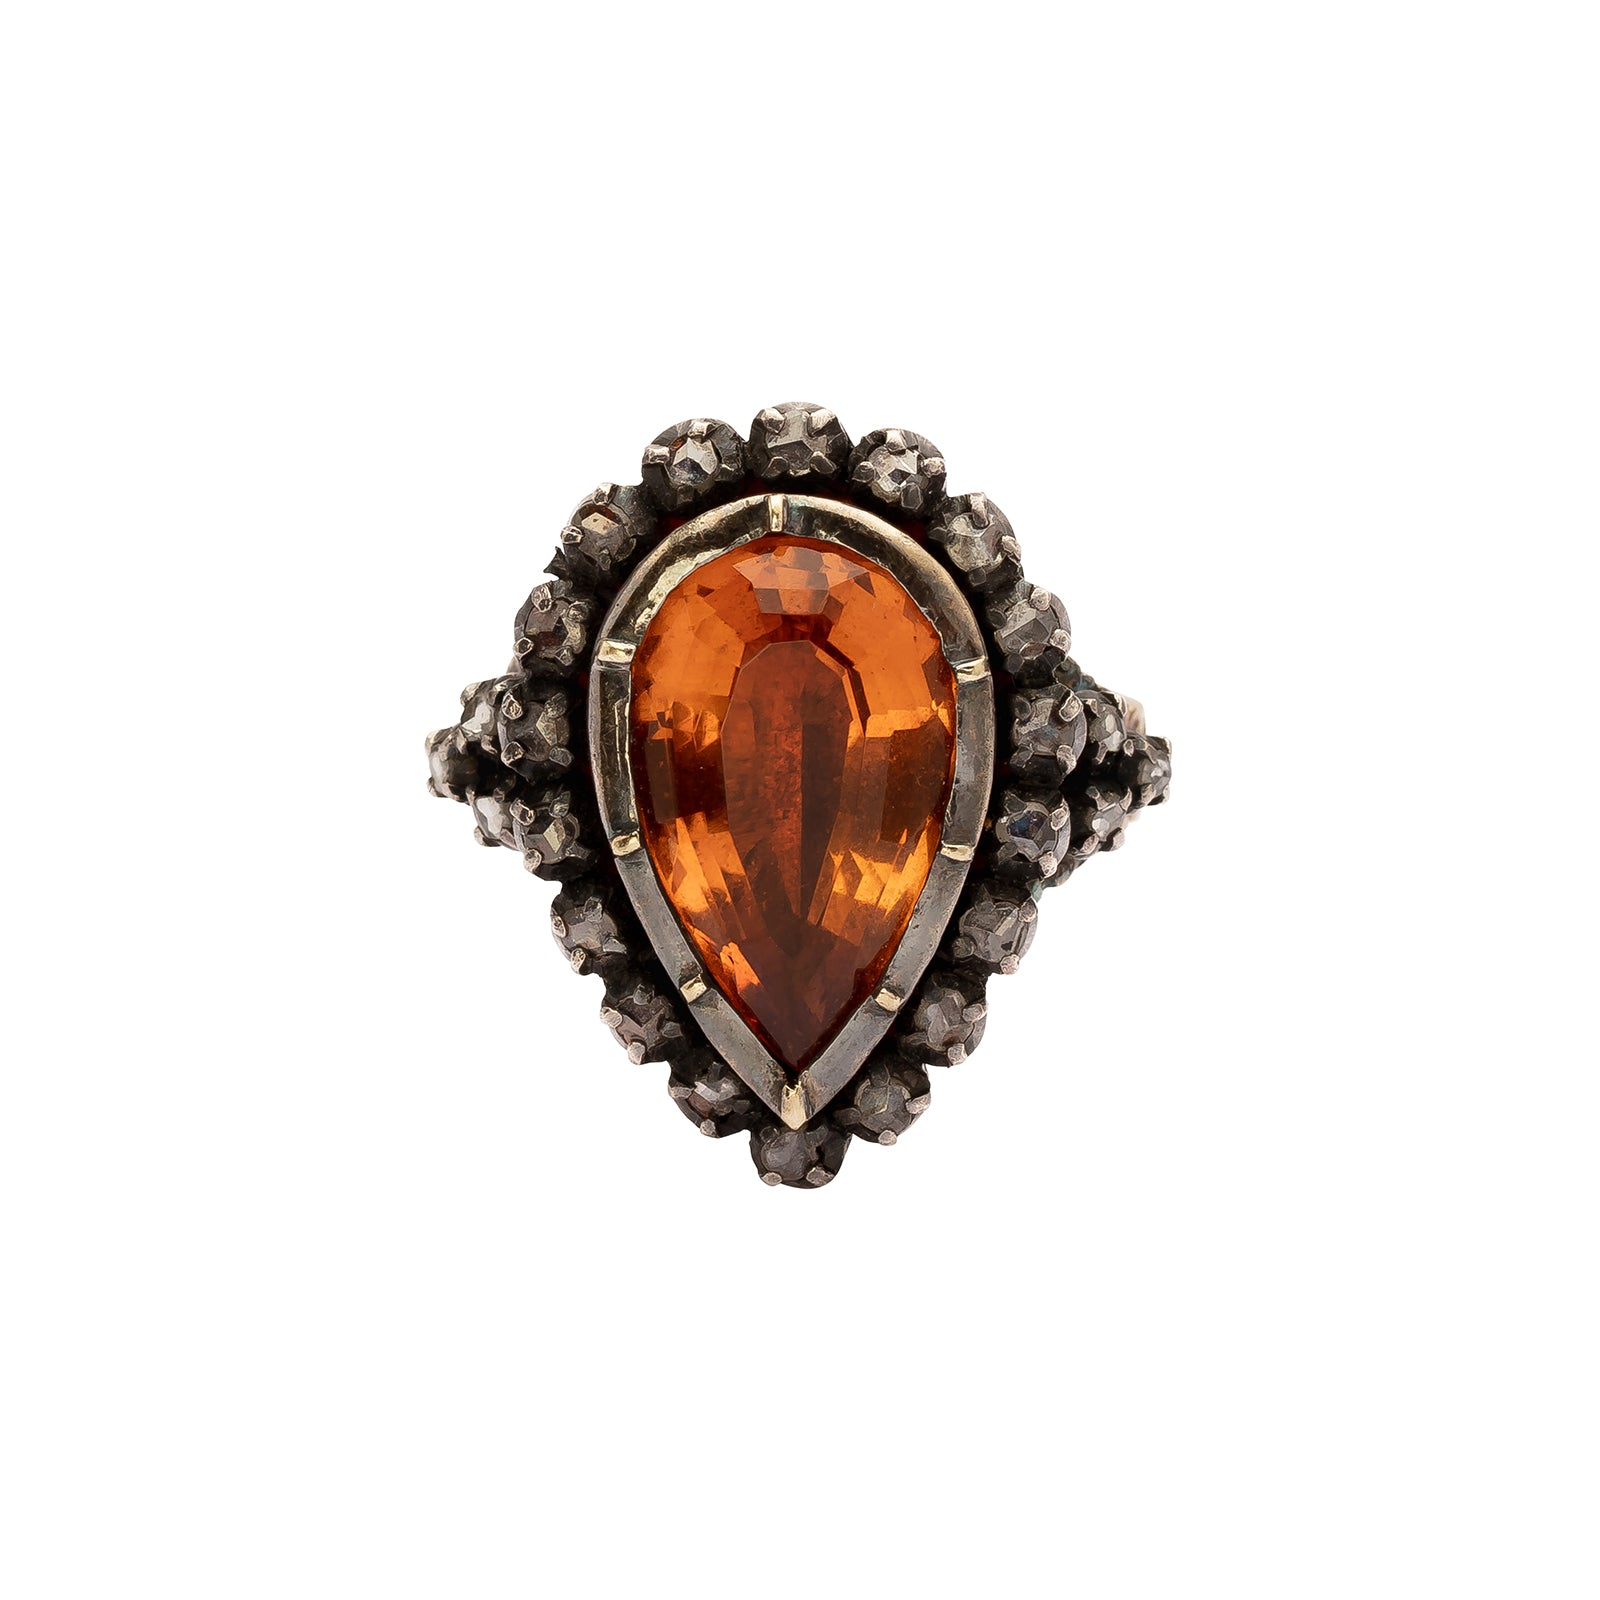 Antique & Vintage Jewelry Pear Shaped Citrine & Diamond Ring - Rings - Broken English Jewelry